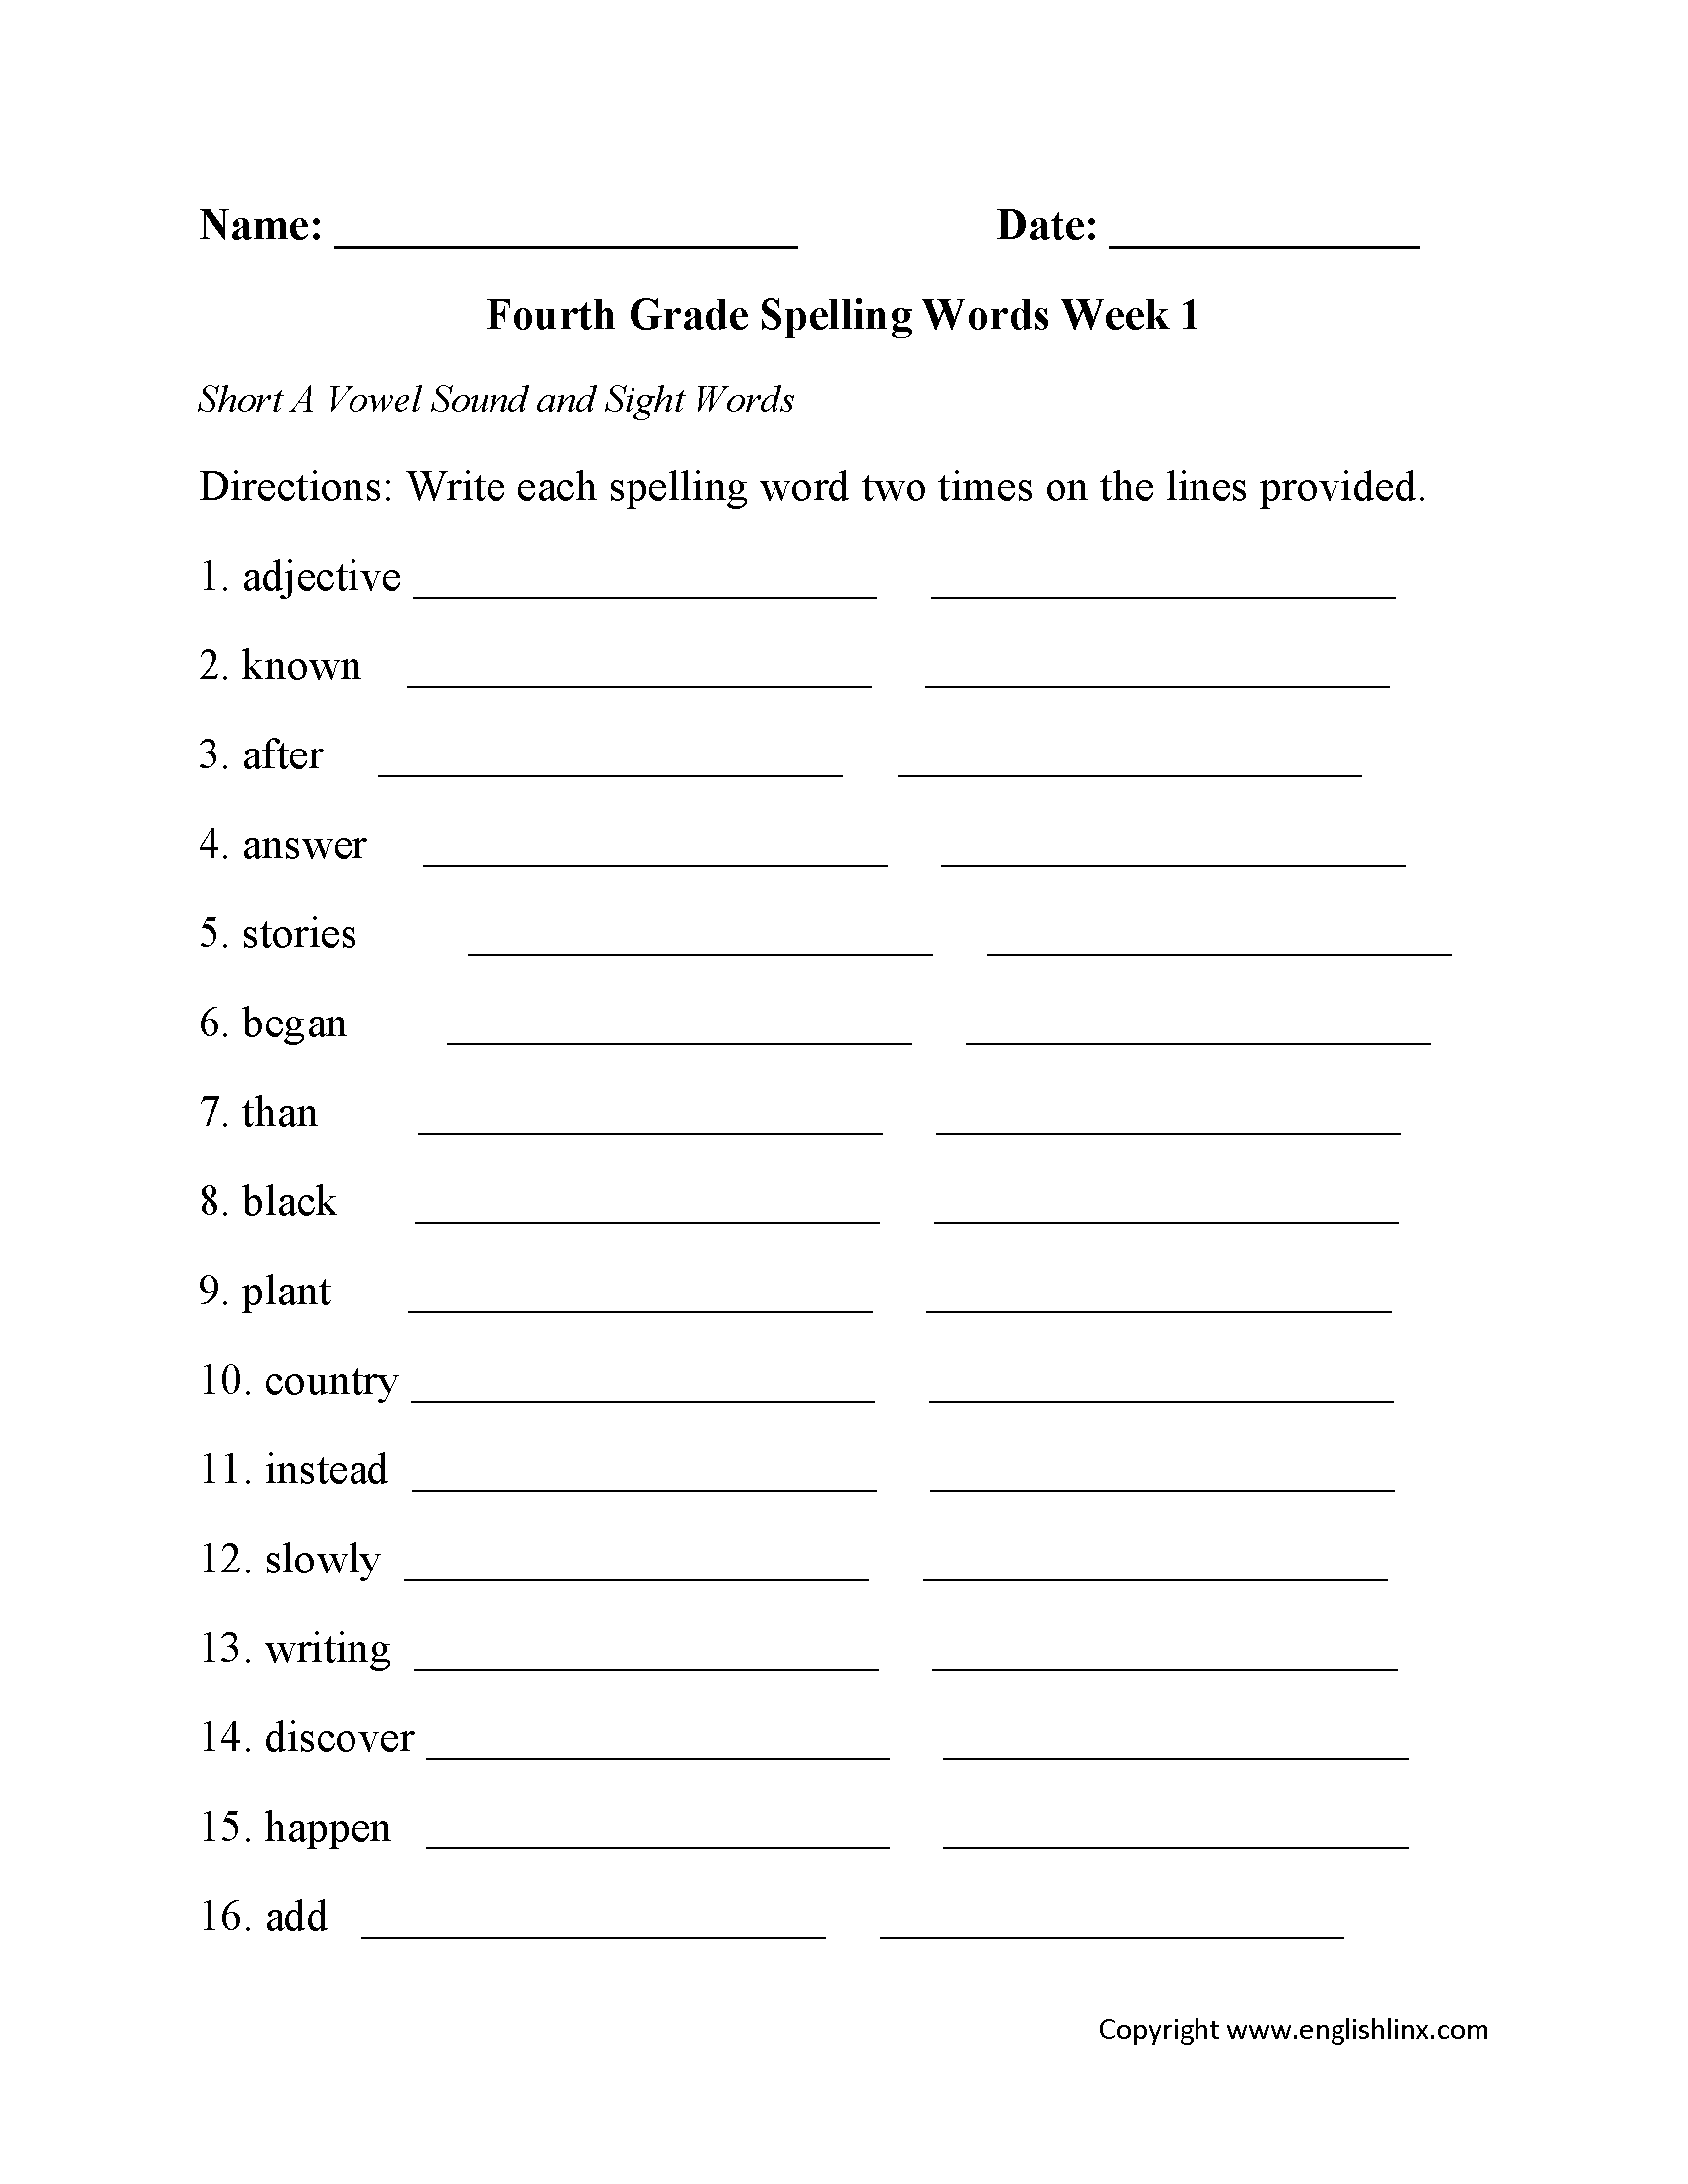 Spelling Worksheets Fourth Grade Spelling Worksheets Roman Numerals Worksheets Grade 4 Fourth Grade Spelling Worksheets